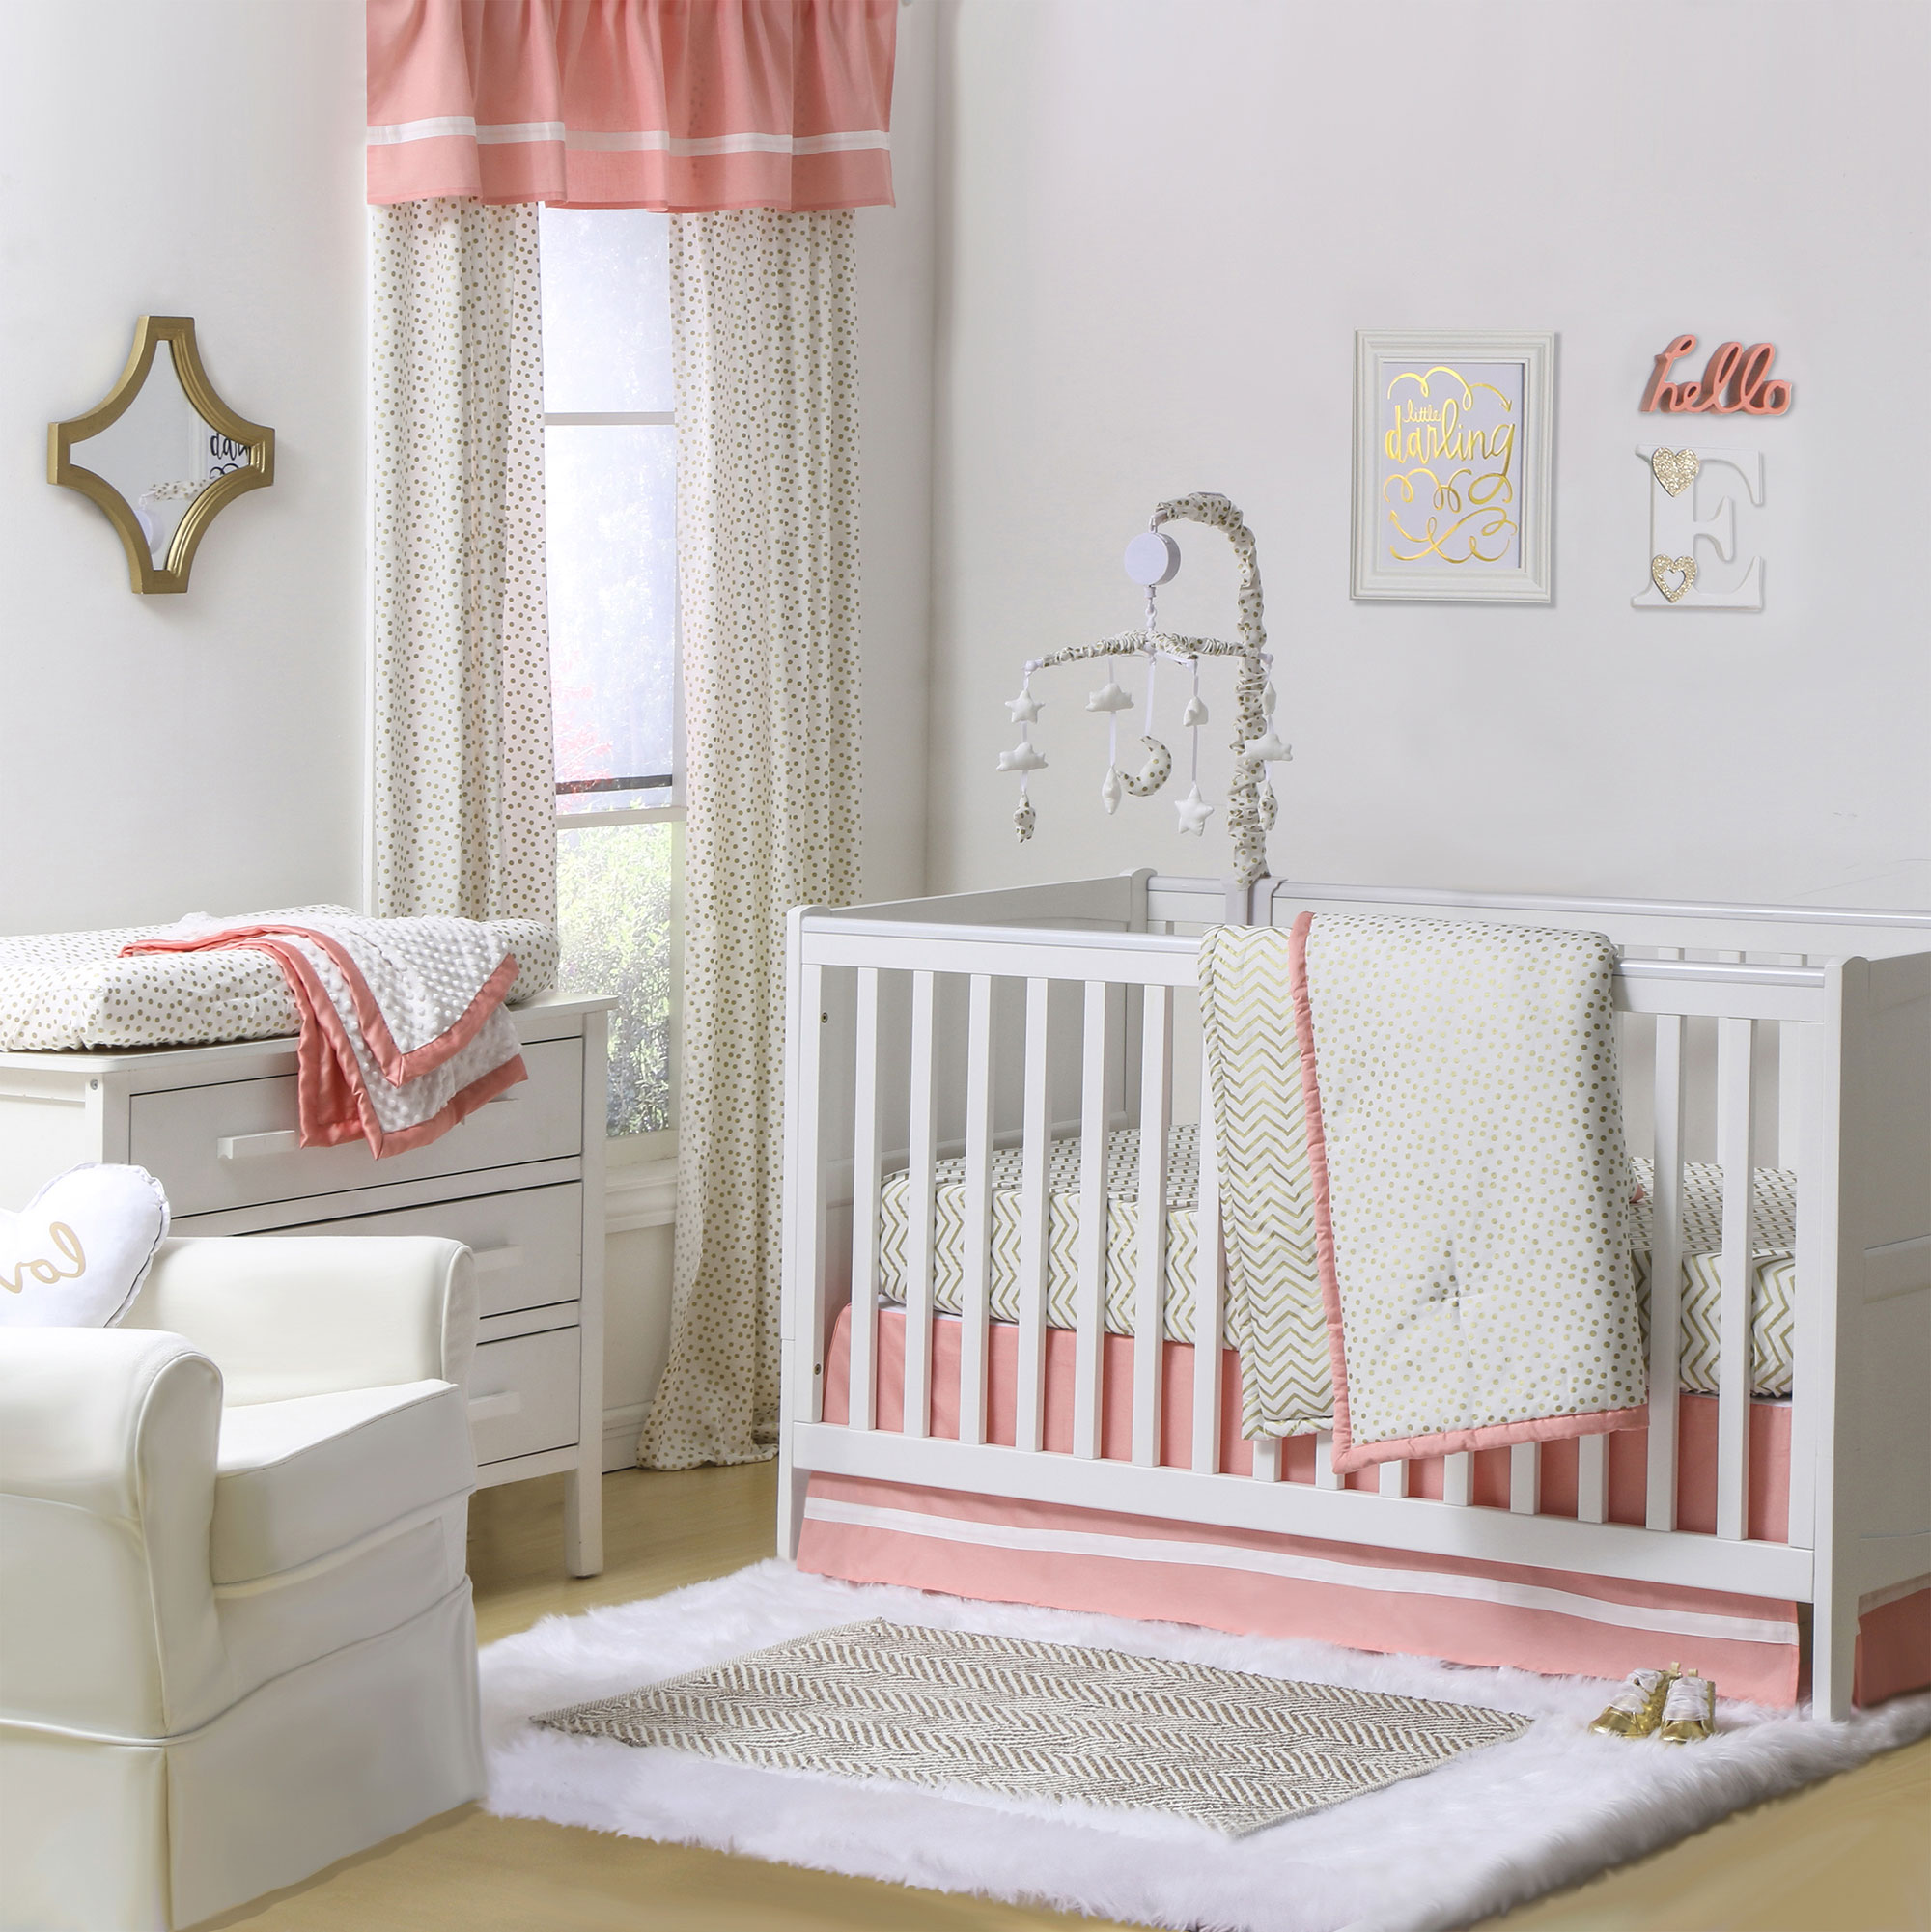 The Peanut Shell 4 Piece Baby Girl Crib Bedding Set - Gold Zig Zag and Confetti Dots with Coral Trim - 100% Cotton Quilt, Dust Ruffle, Fitted Sheet, and Mobile